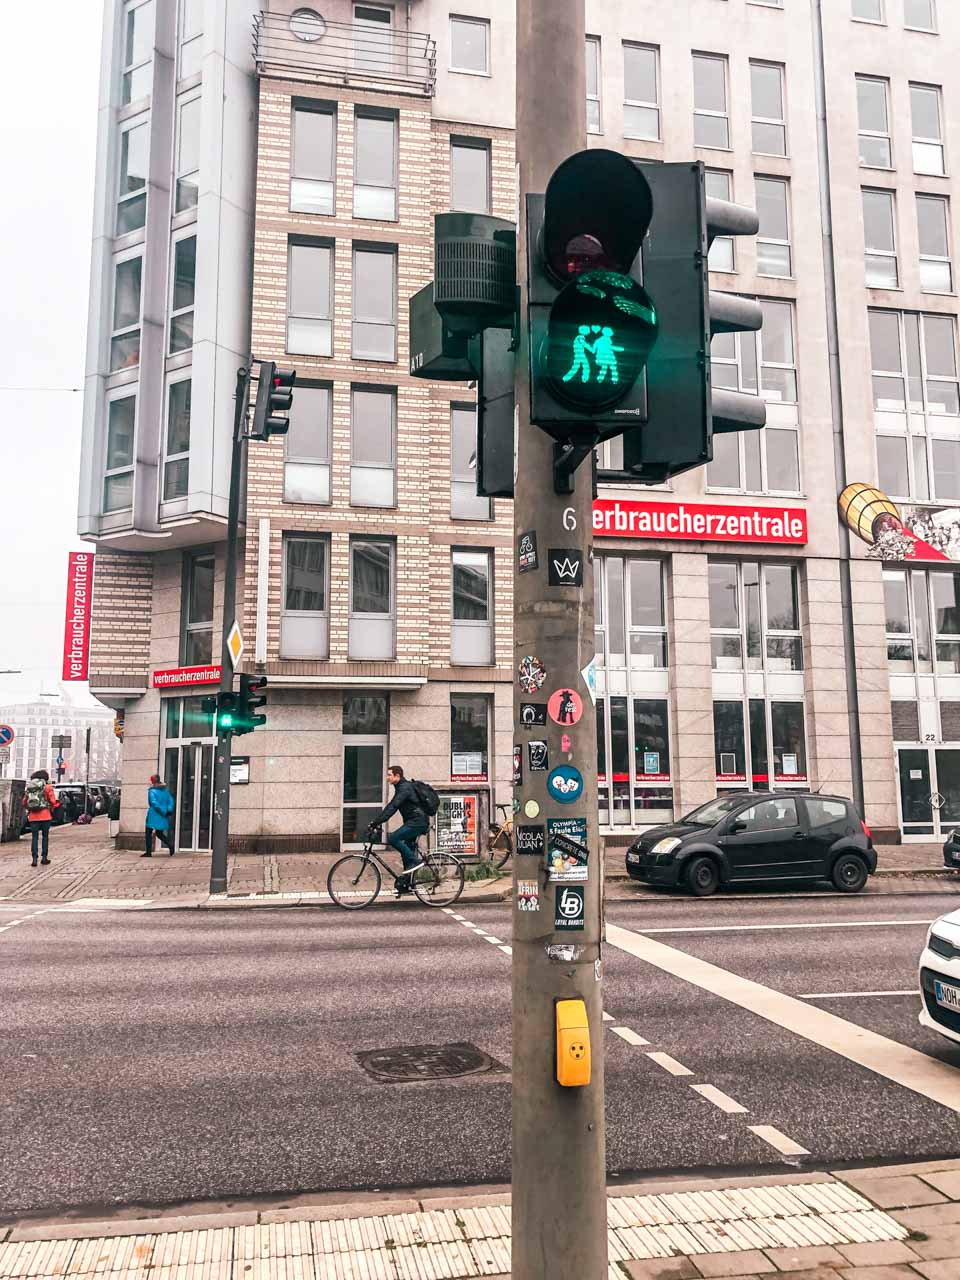 Traffic lights showing a couple holding hands in Hamburg, Germany